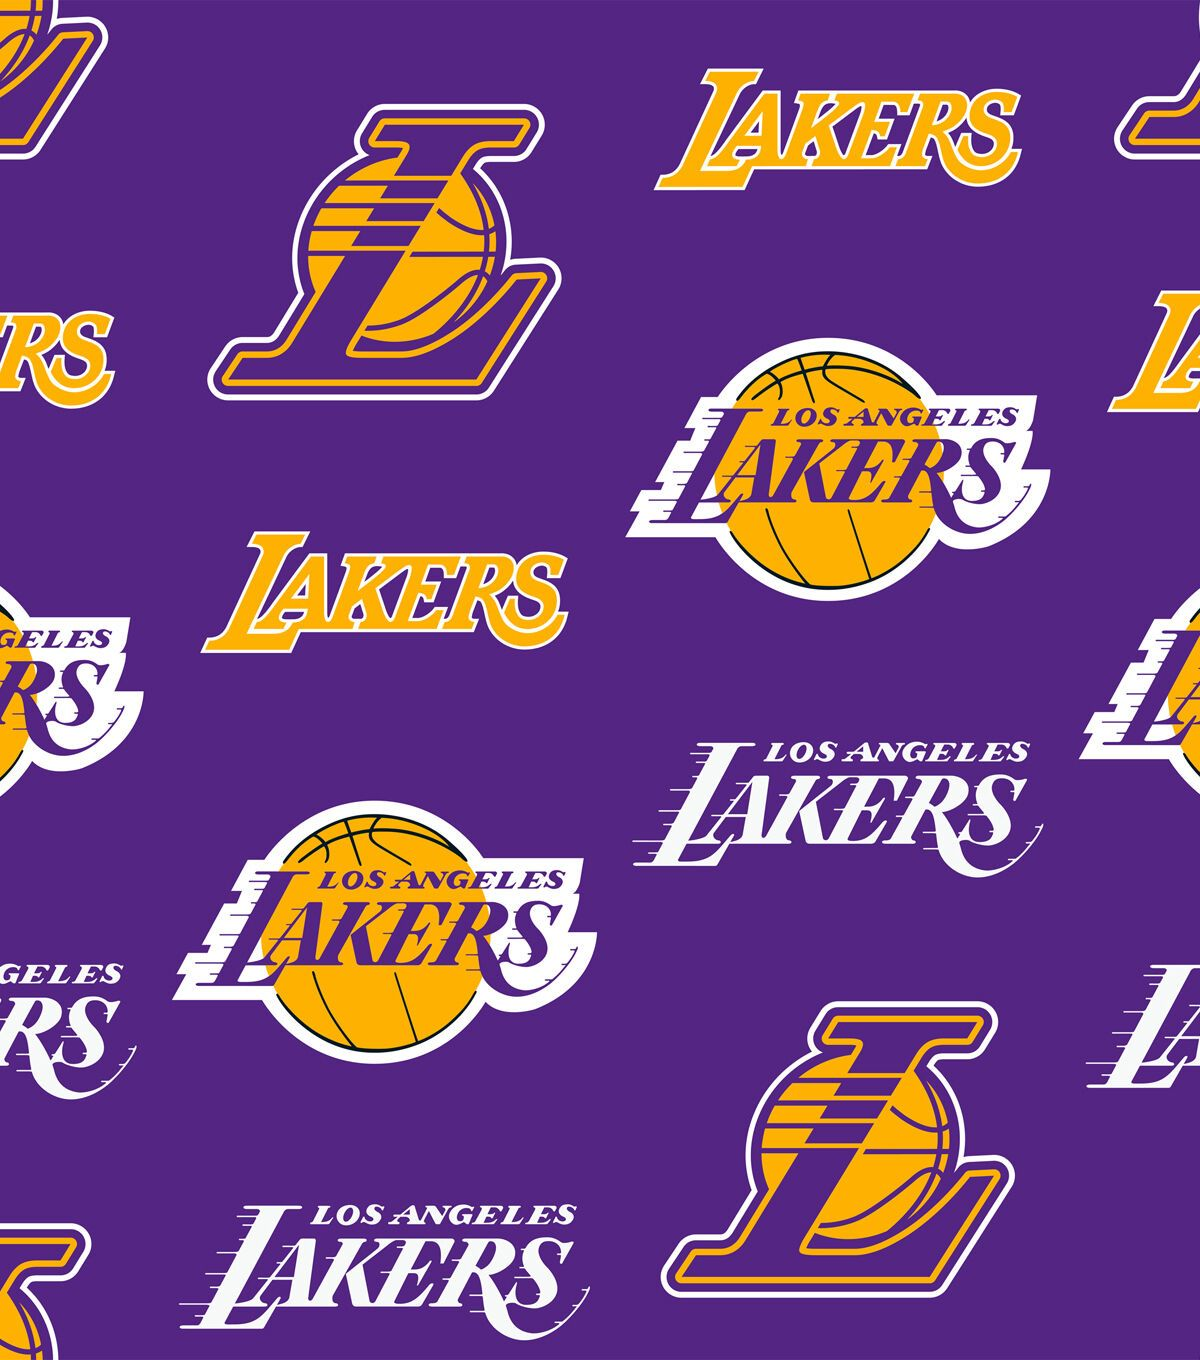 Die - hard fans can show team spirit and love of the game by creating any kind of apparel or accessory. Make some cozy pants or stylish shorts with LA Lakers fabric. Keep warm during the winter with a fleece shirt, jacket, or blanket. This LA Lakers fleece fabric makes a creative and fun no sew throw. A fleece scarf will keep you warm during those chilly days. Add a fun twist to your home decor with this NBAfleece fabric. The possibilities are endless. Width: 58 inchesContent: 100% PolyesterMade